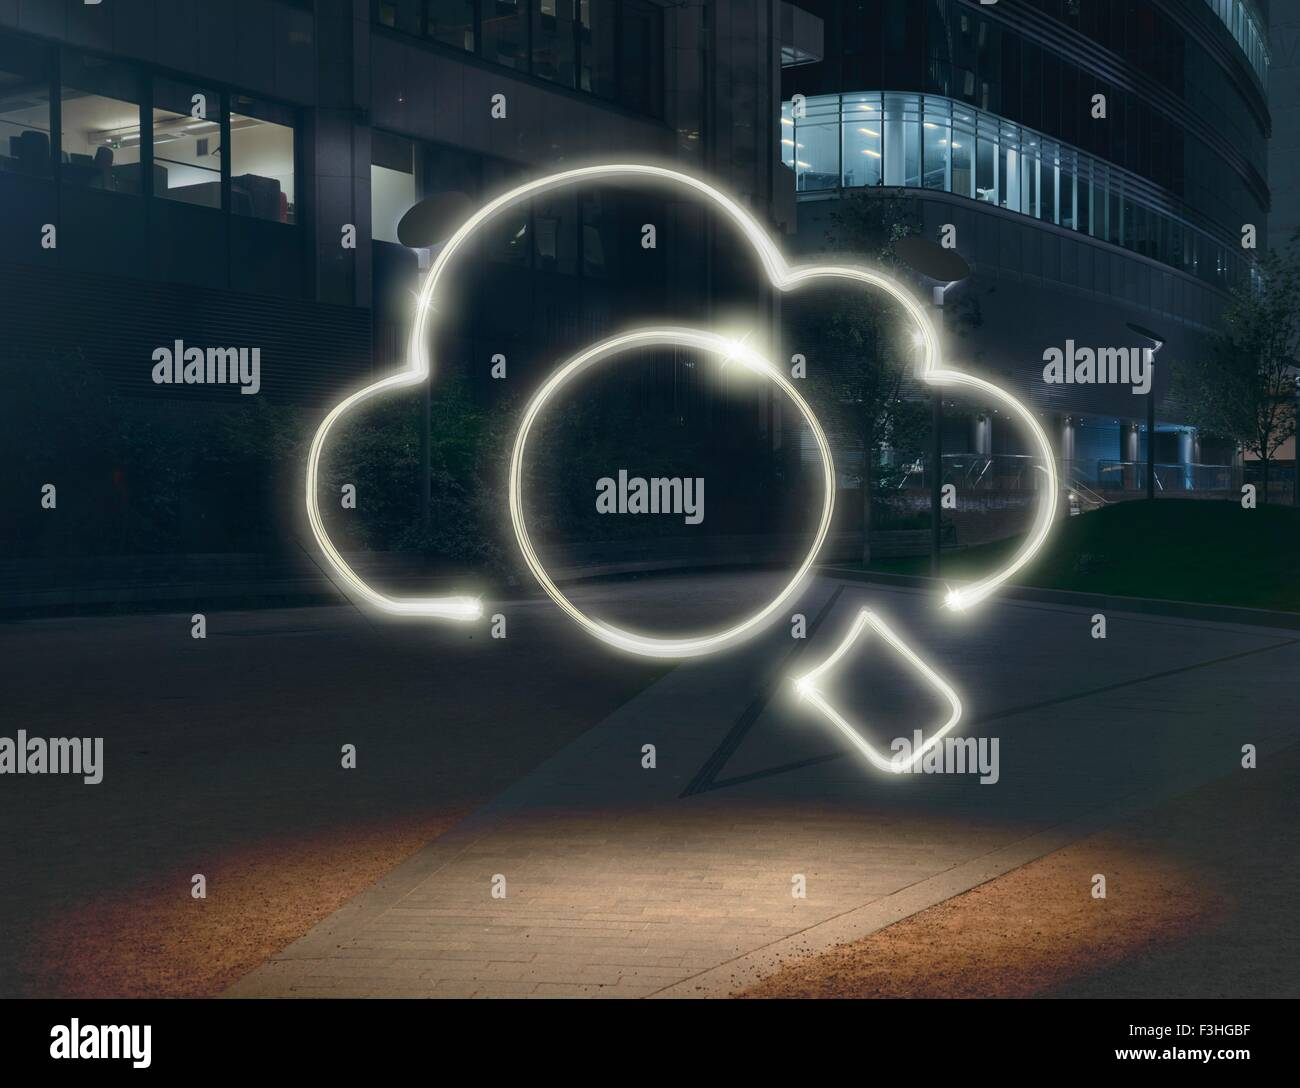 Glowing cloud symbol surrounding circle in city at night - Stock Image